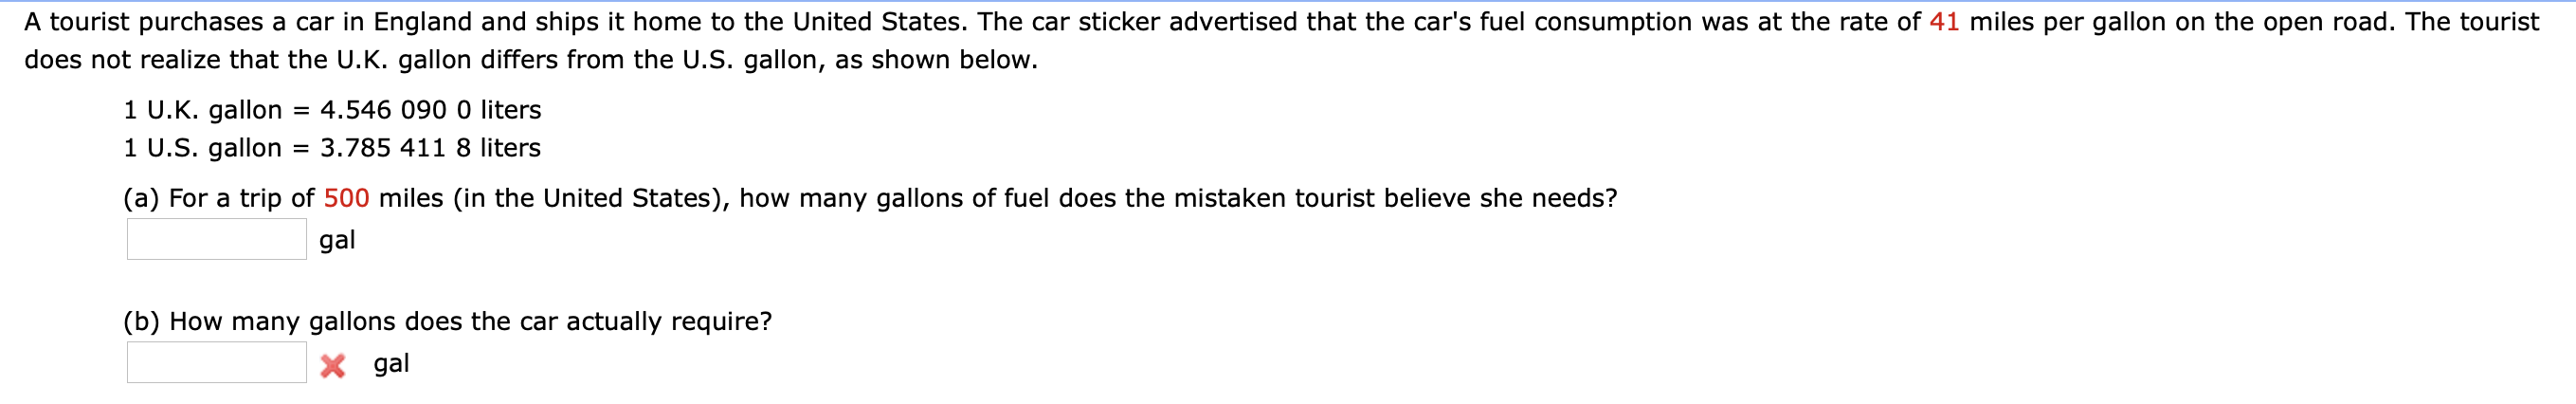 A tourist purchases a car in England and ships it home to the United States. The car sticker advertised that the car's fuel consumption was at the rate of 41 miles per gallon on the open road. The tourist does not realize that the U.K. gallon differs from the U.S. gallon, as shown below. 1 U.K. gallon 1 U.S. gallon = 4.546 090 0 liters 3.785 411 8 liters (a) For a trip of 500 miles (in the United States), how many gallons of fuel does the mistaken tourist believe she needs? gal (b) How many gallons does the car actually require? X gal